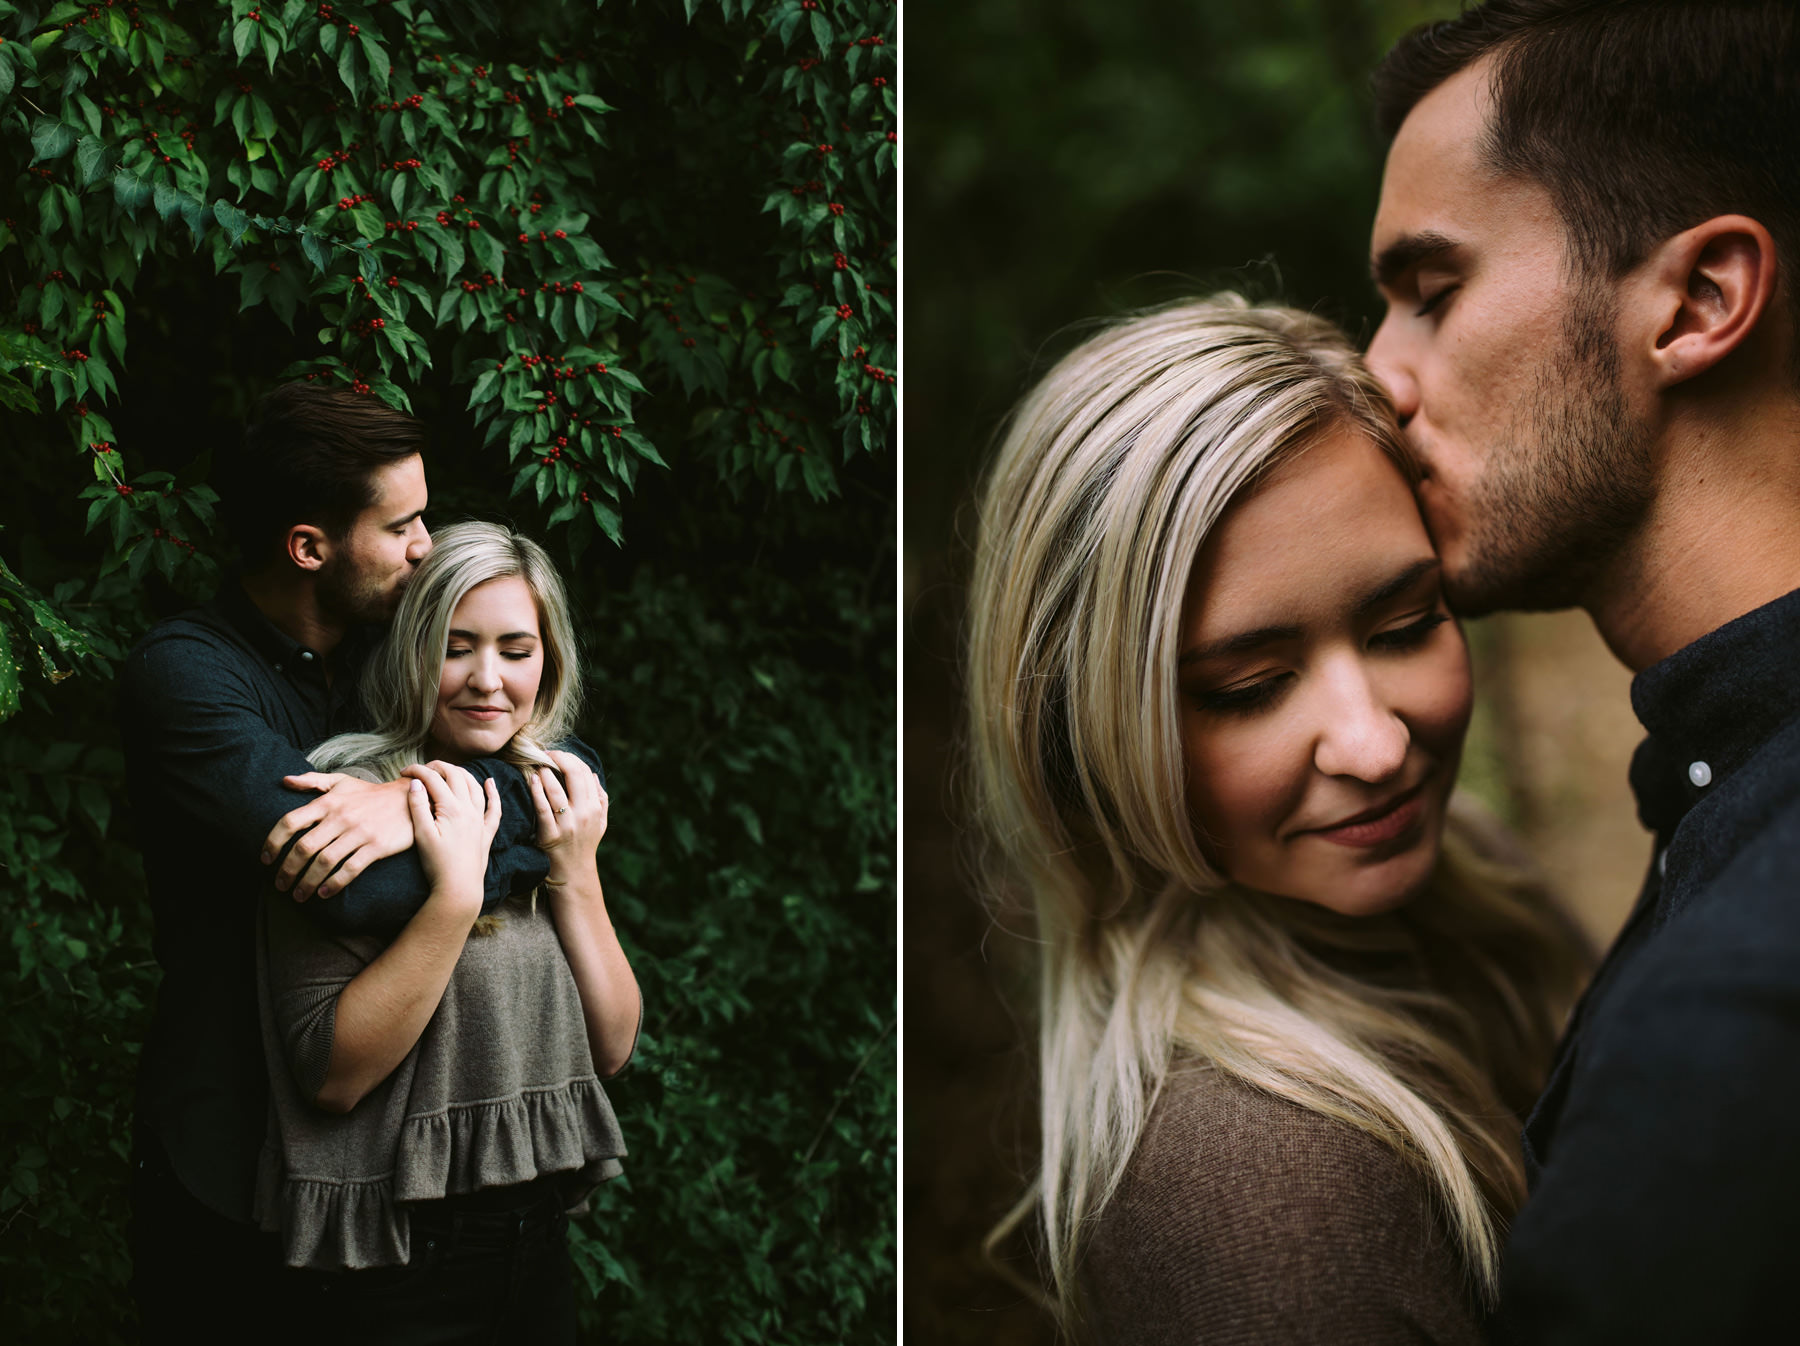 203_Cliff Drive Park Sunset Engagement Session Kansas City, Missouri_Kindling Wedding Photography.JPG